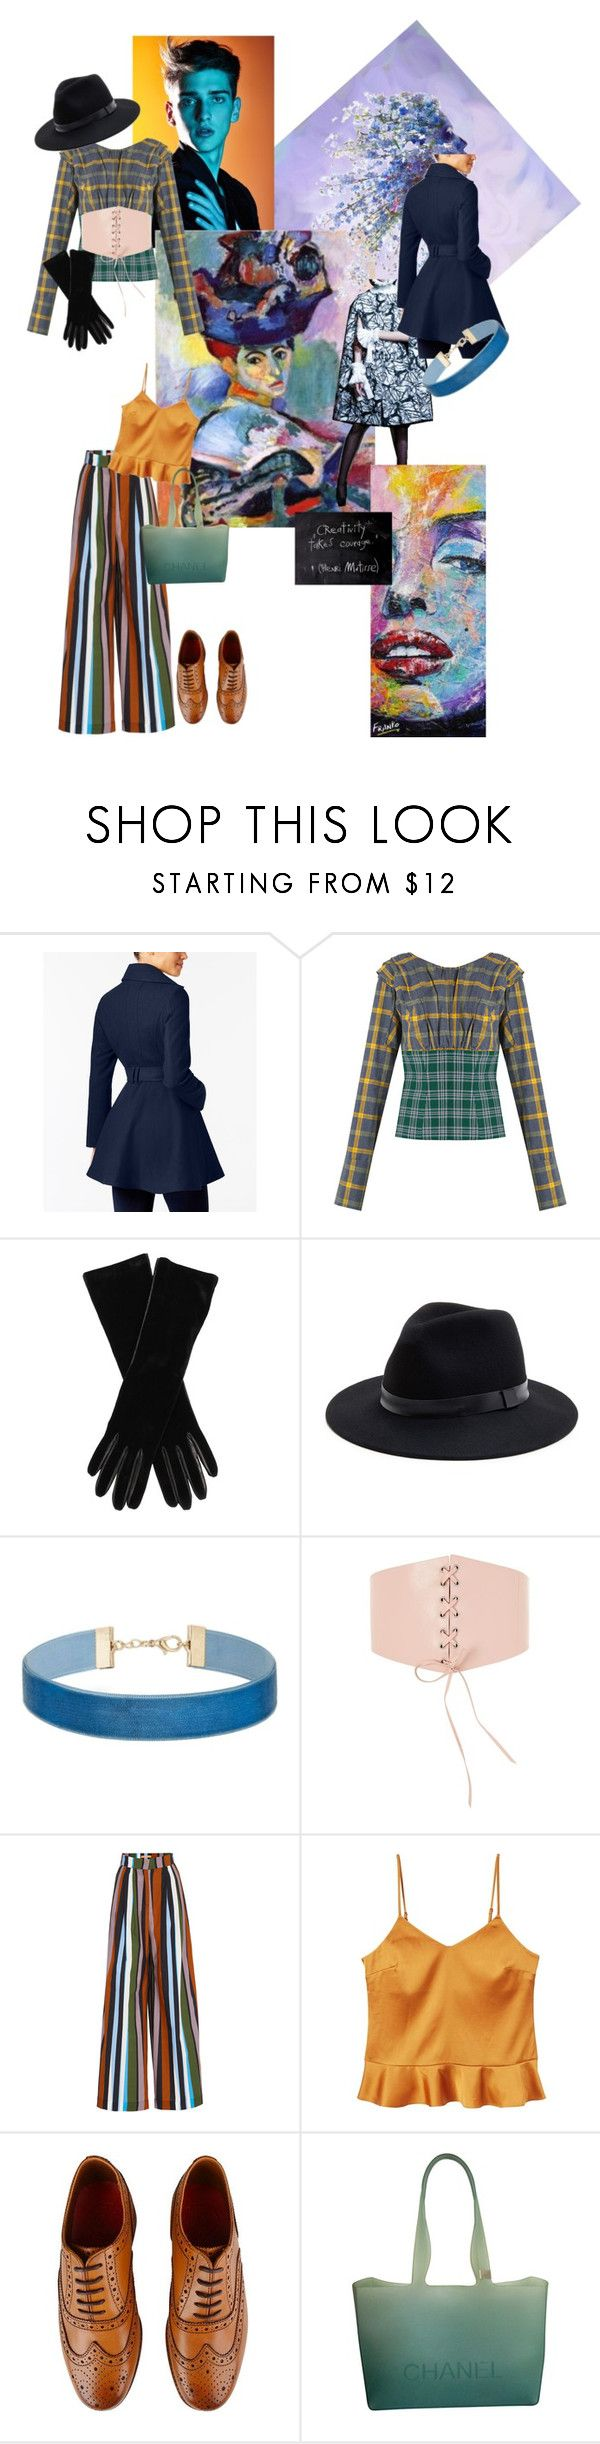 """Matisse"" by iselinln on Polyvore featuring INC International Concepts, Natasha Zinko, Armani Collezioni, Sole Society, Miss Selfridge, Topshop, Smarteez, MANGO, Grenson and Chanel"